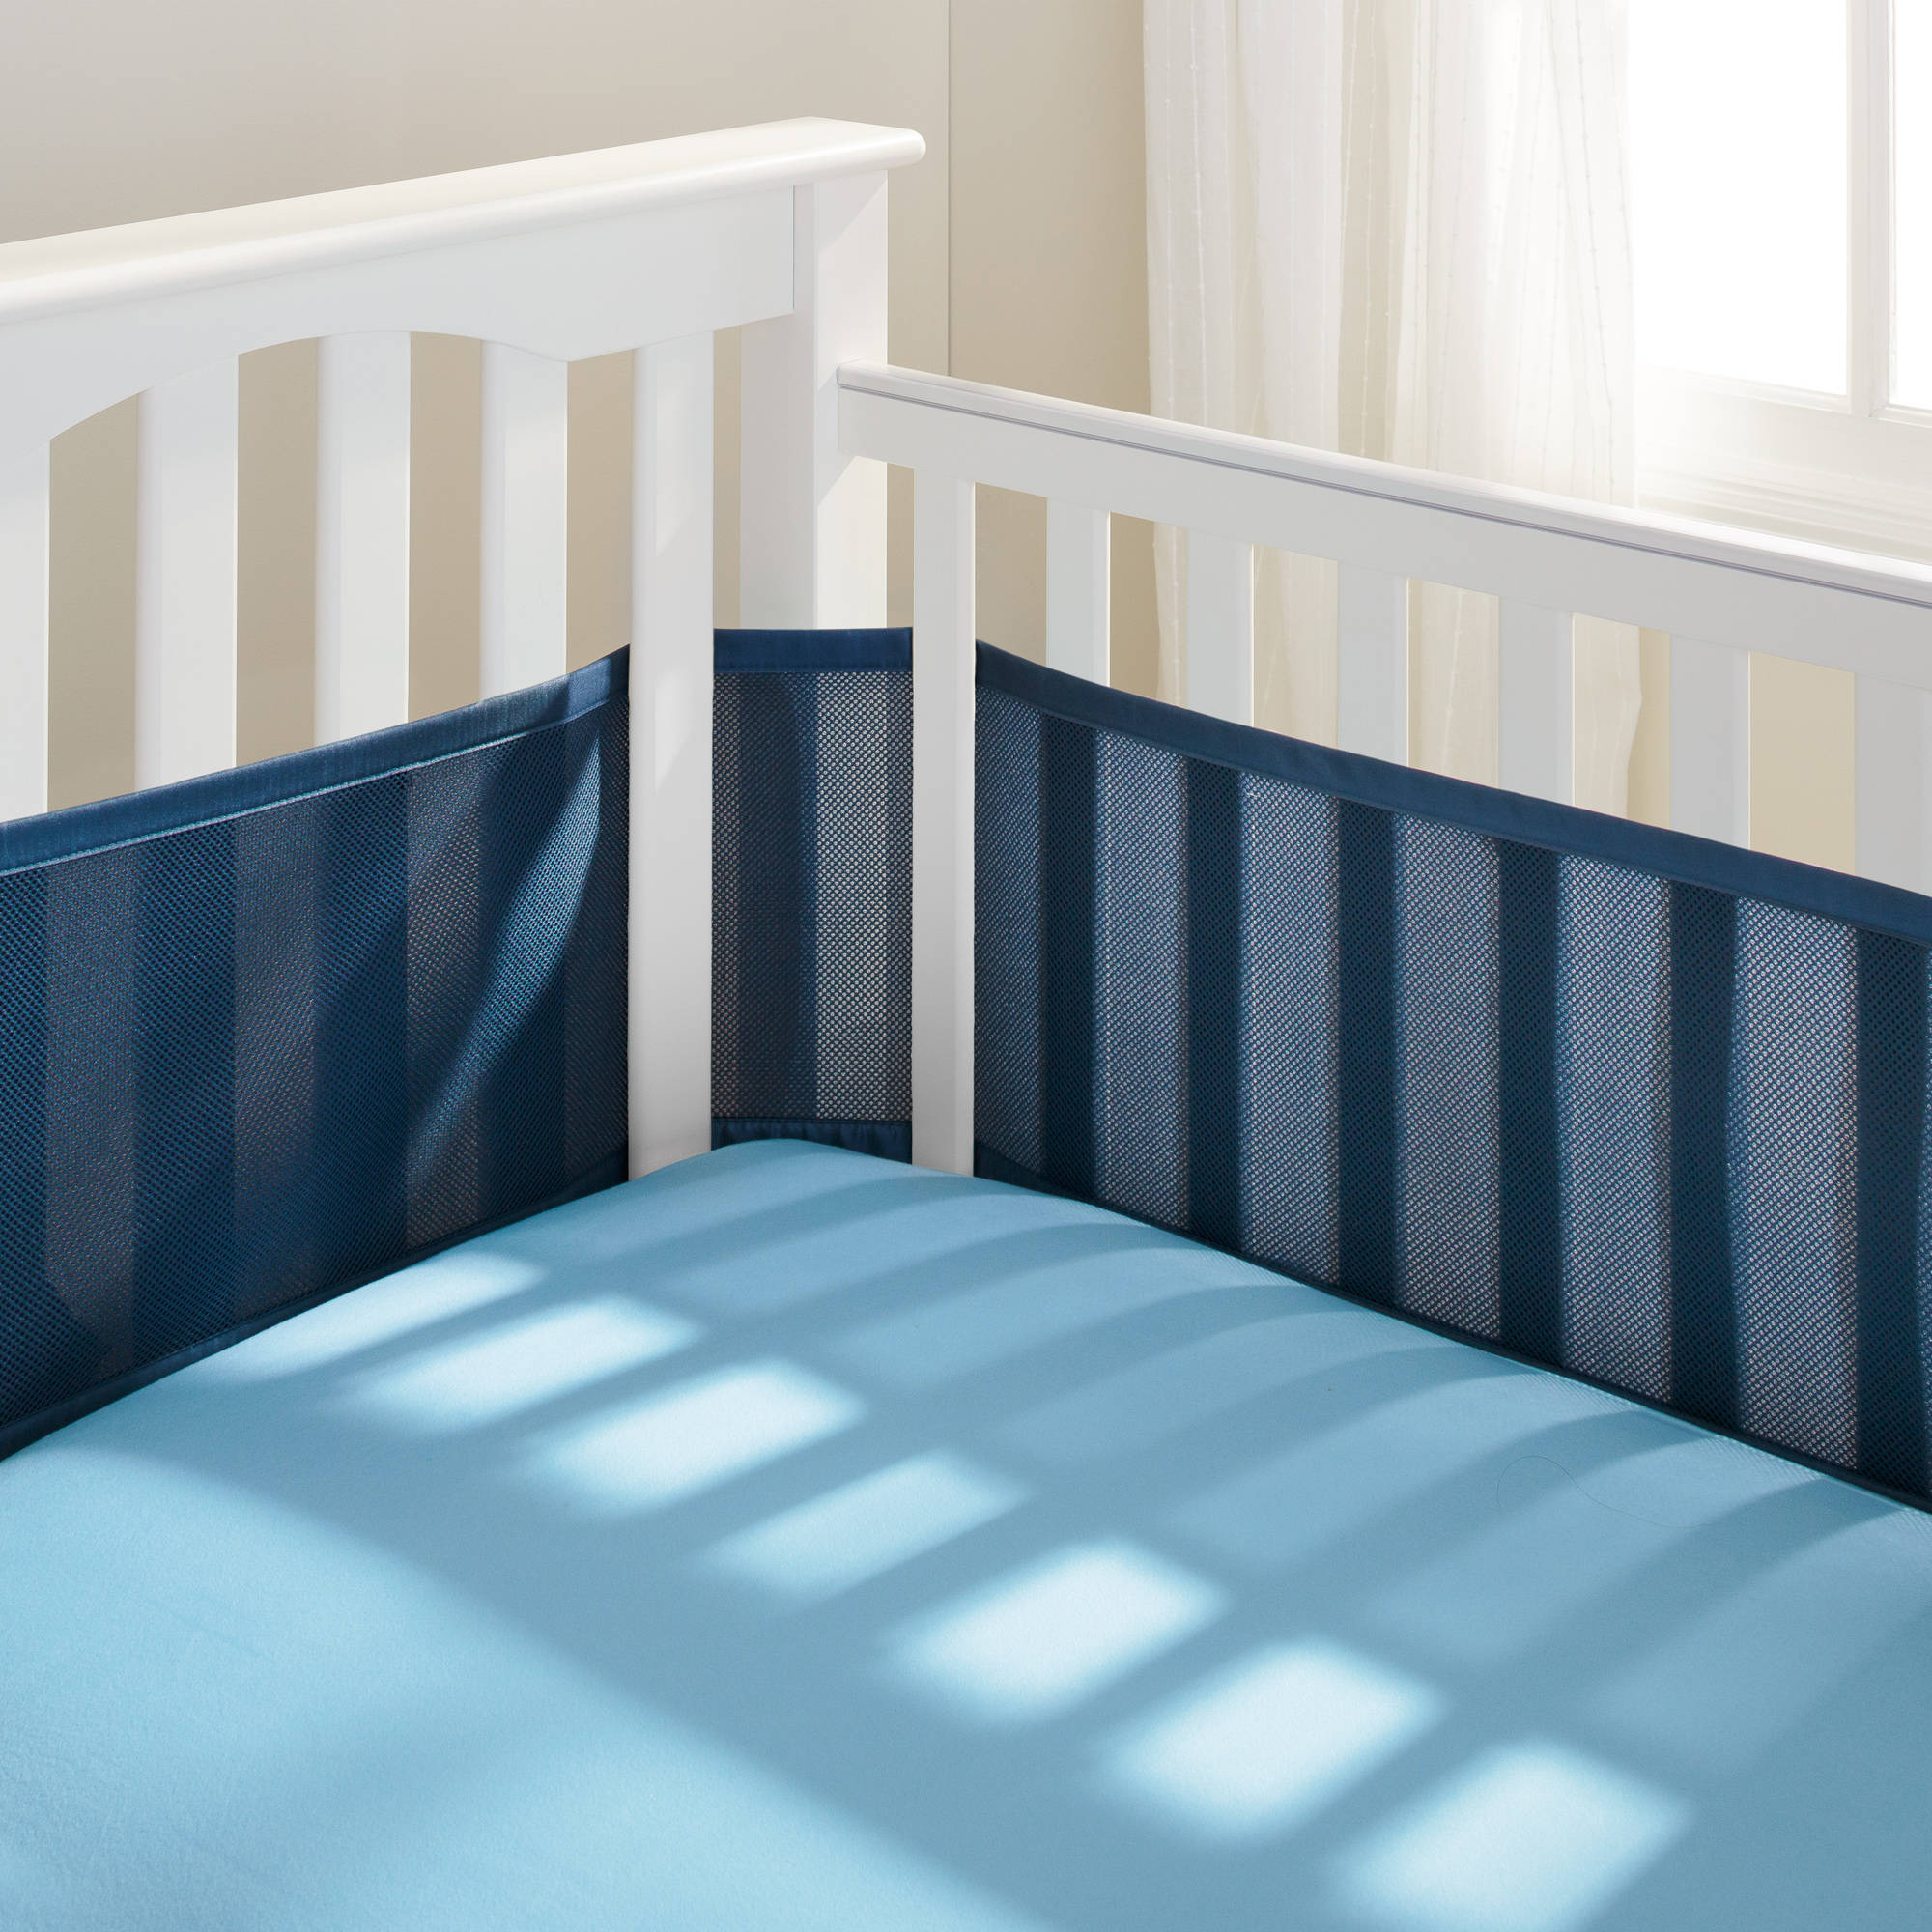 BreathableBaby - Breathable Crib Liner, Fits All Cribs, Navy